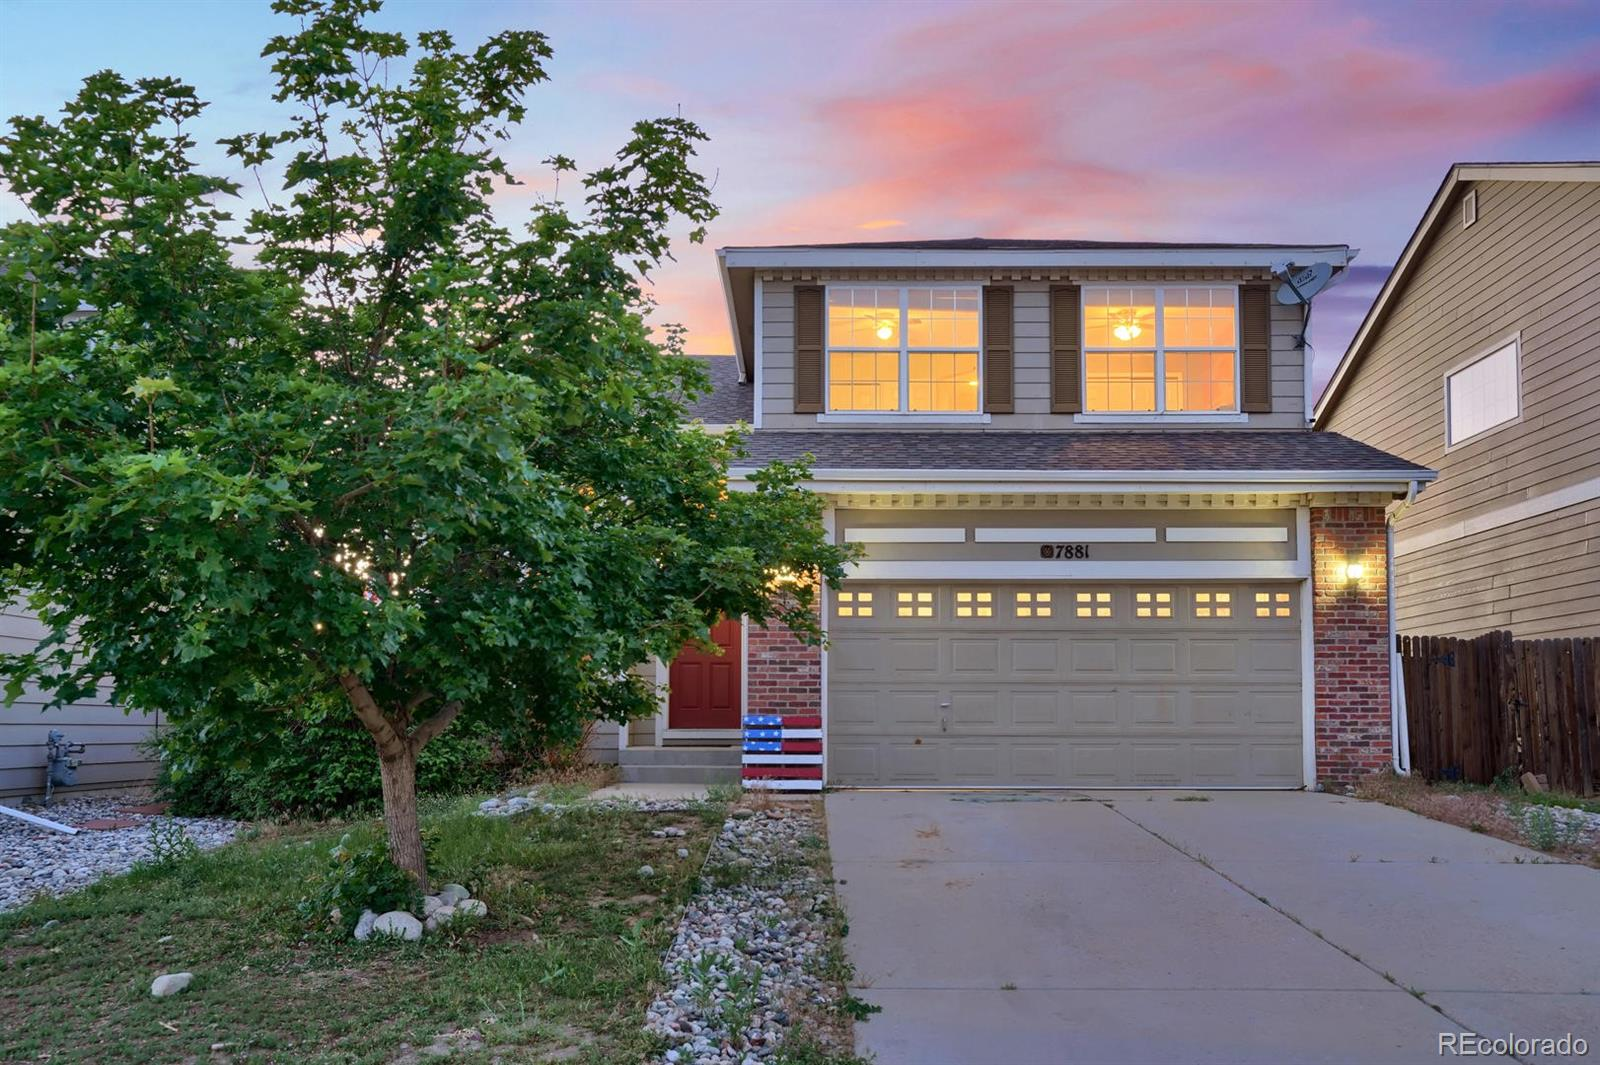 7881 Parsonage Lane Property Photo - Colorado Springs, CO real estate listing